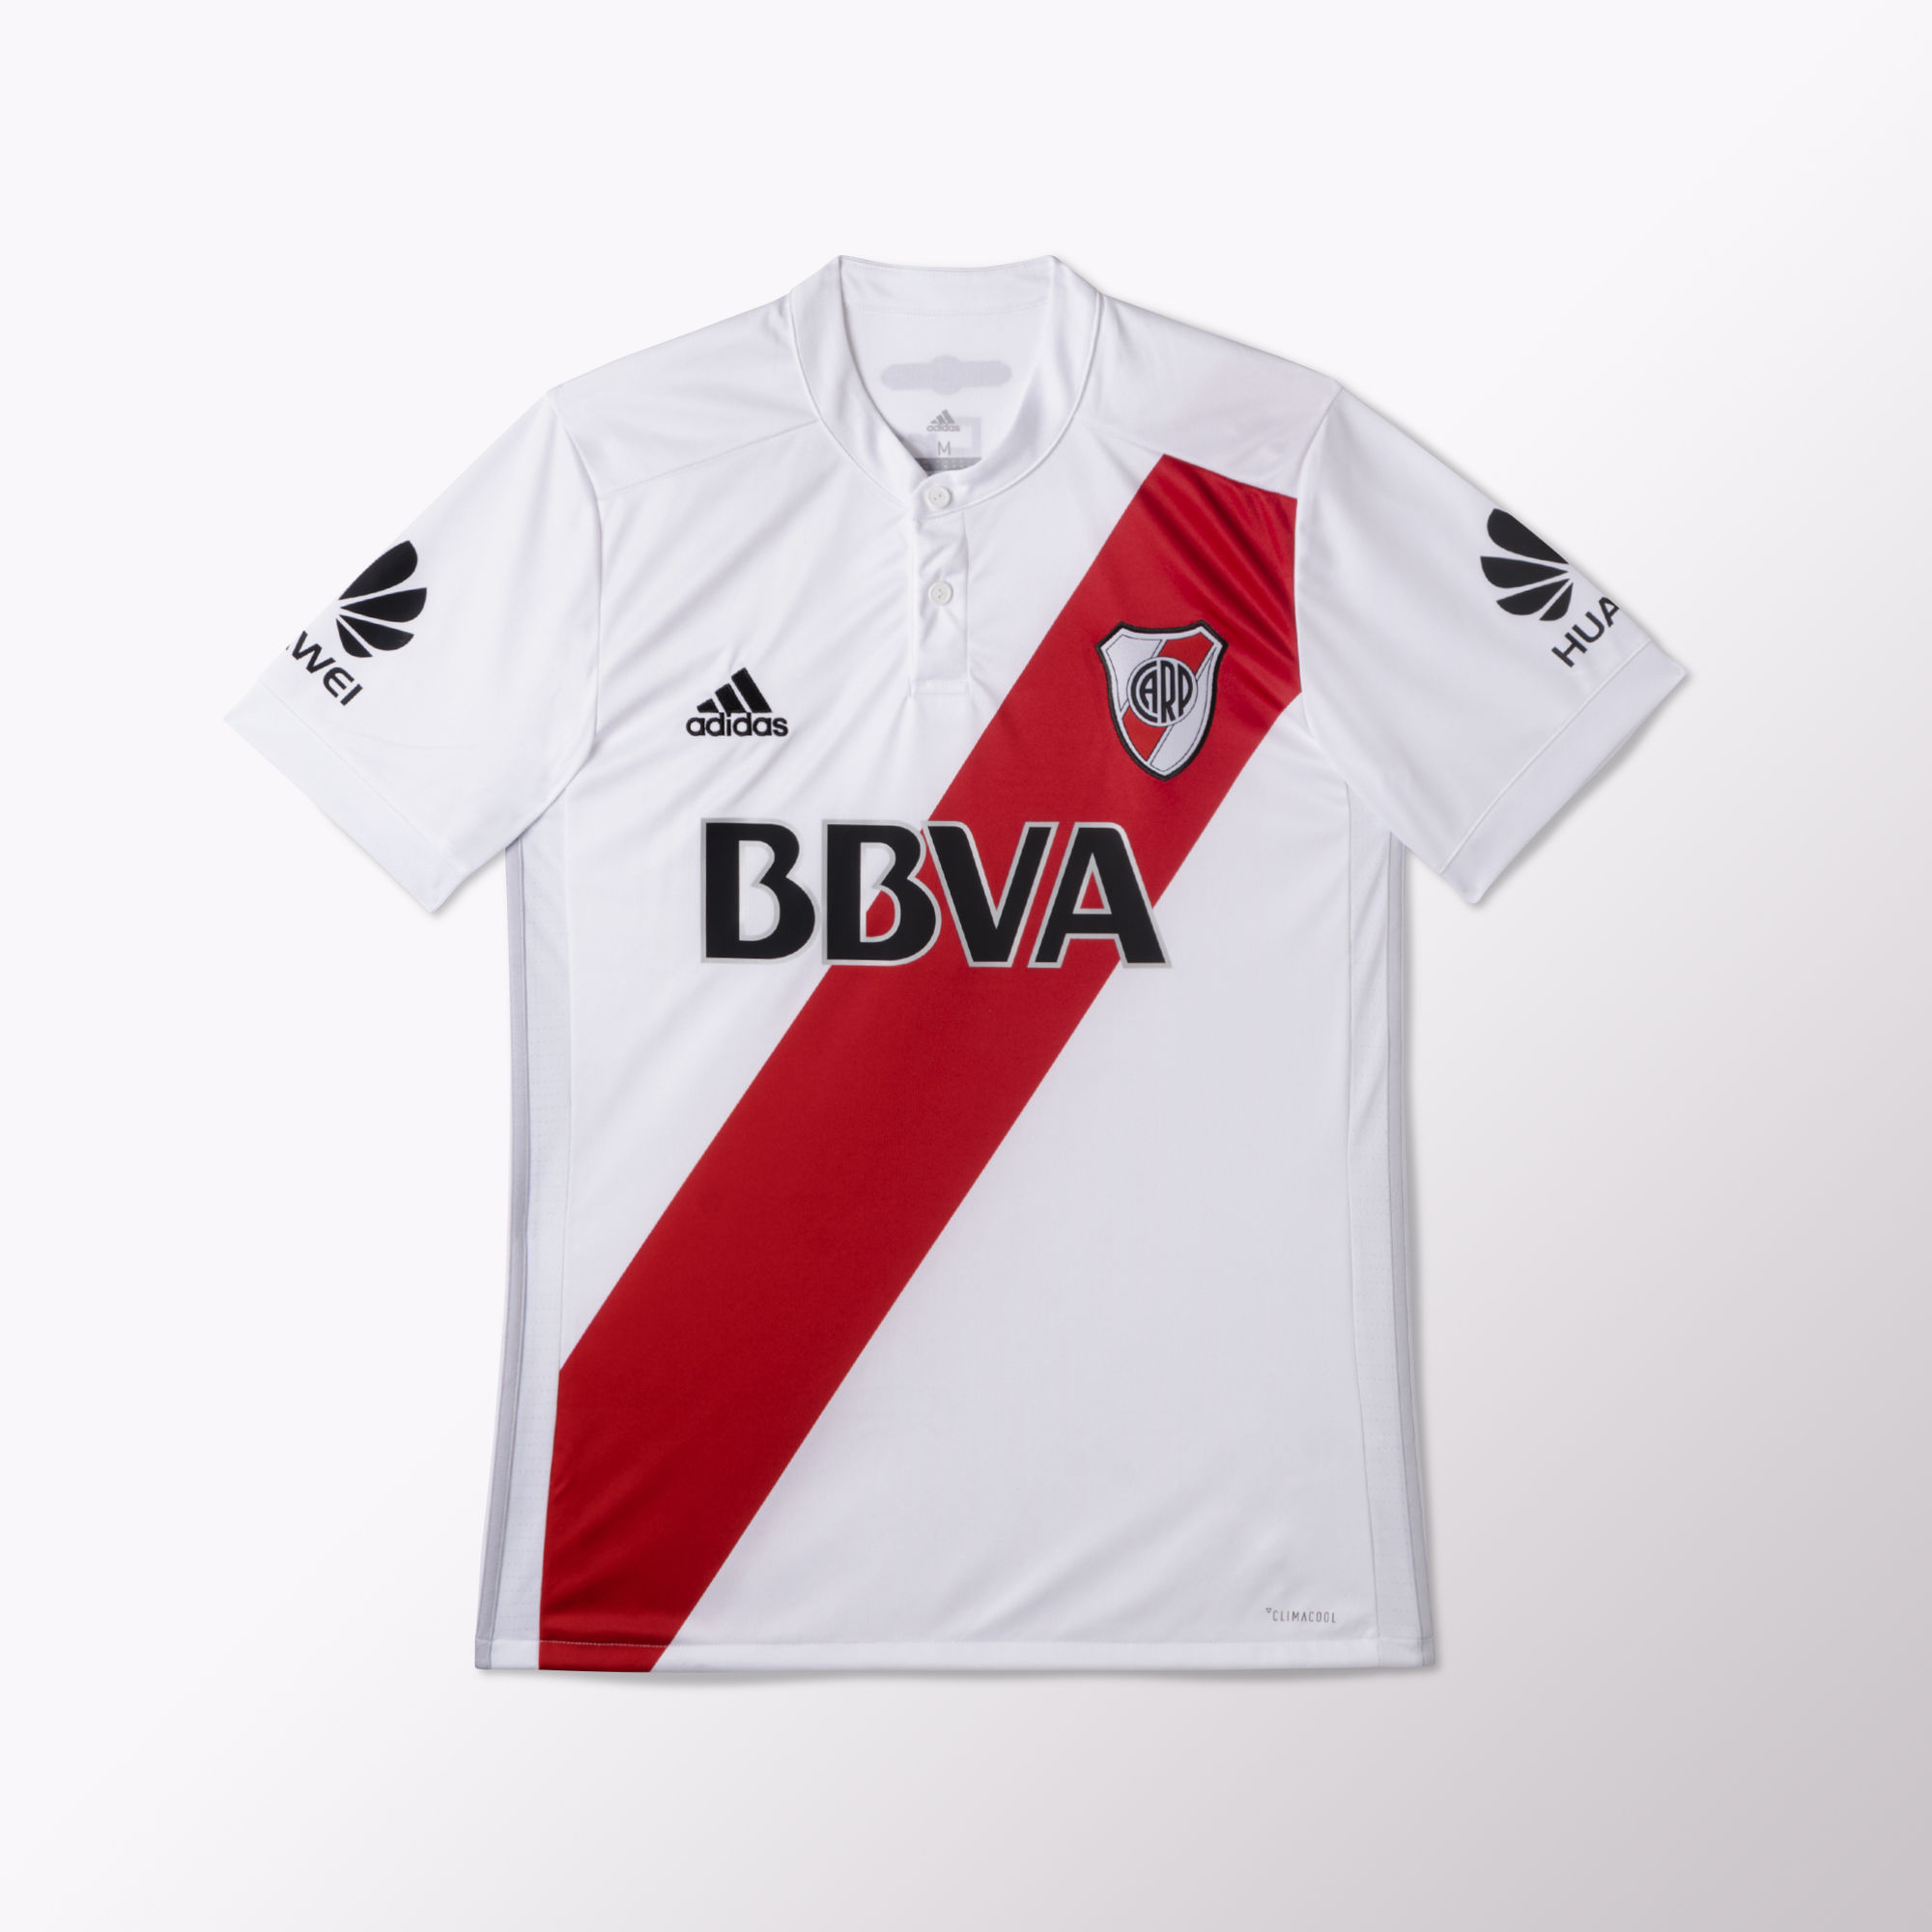 3a10a37e5e0 River Plate 17/18 Adidas Home Kit | 17/18 Kits | Football shirt blog